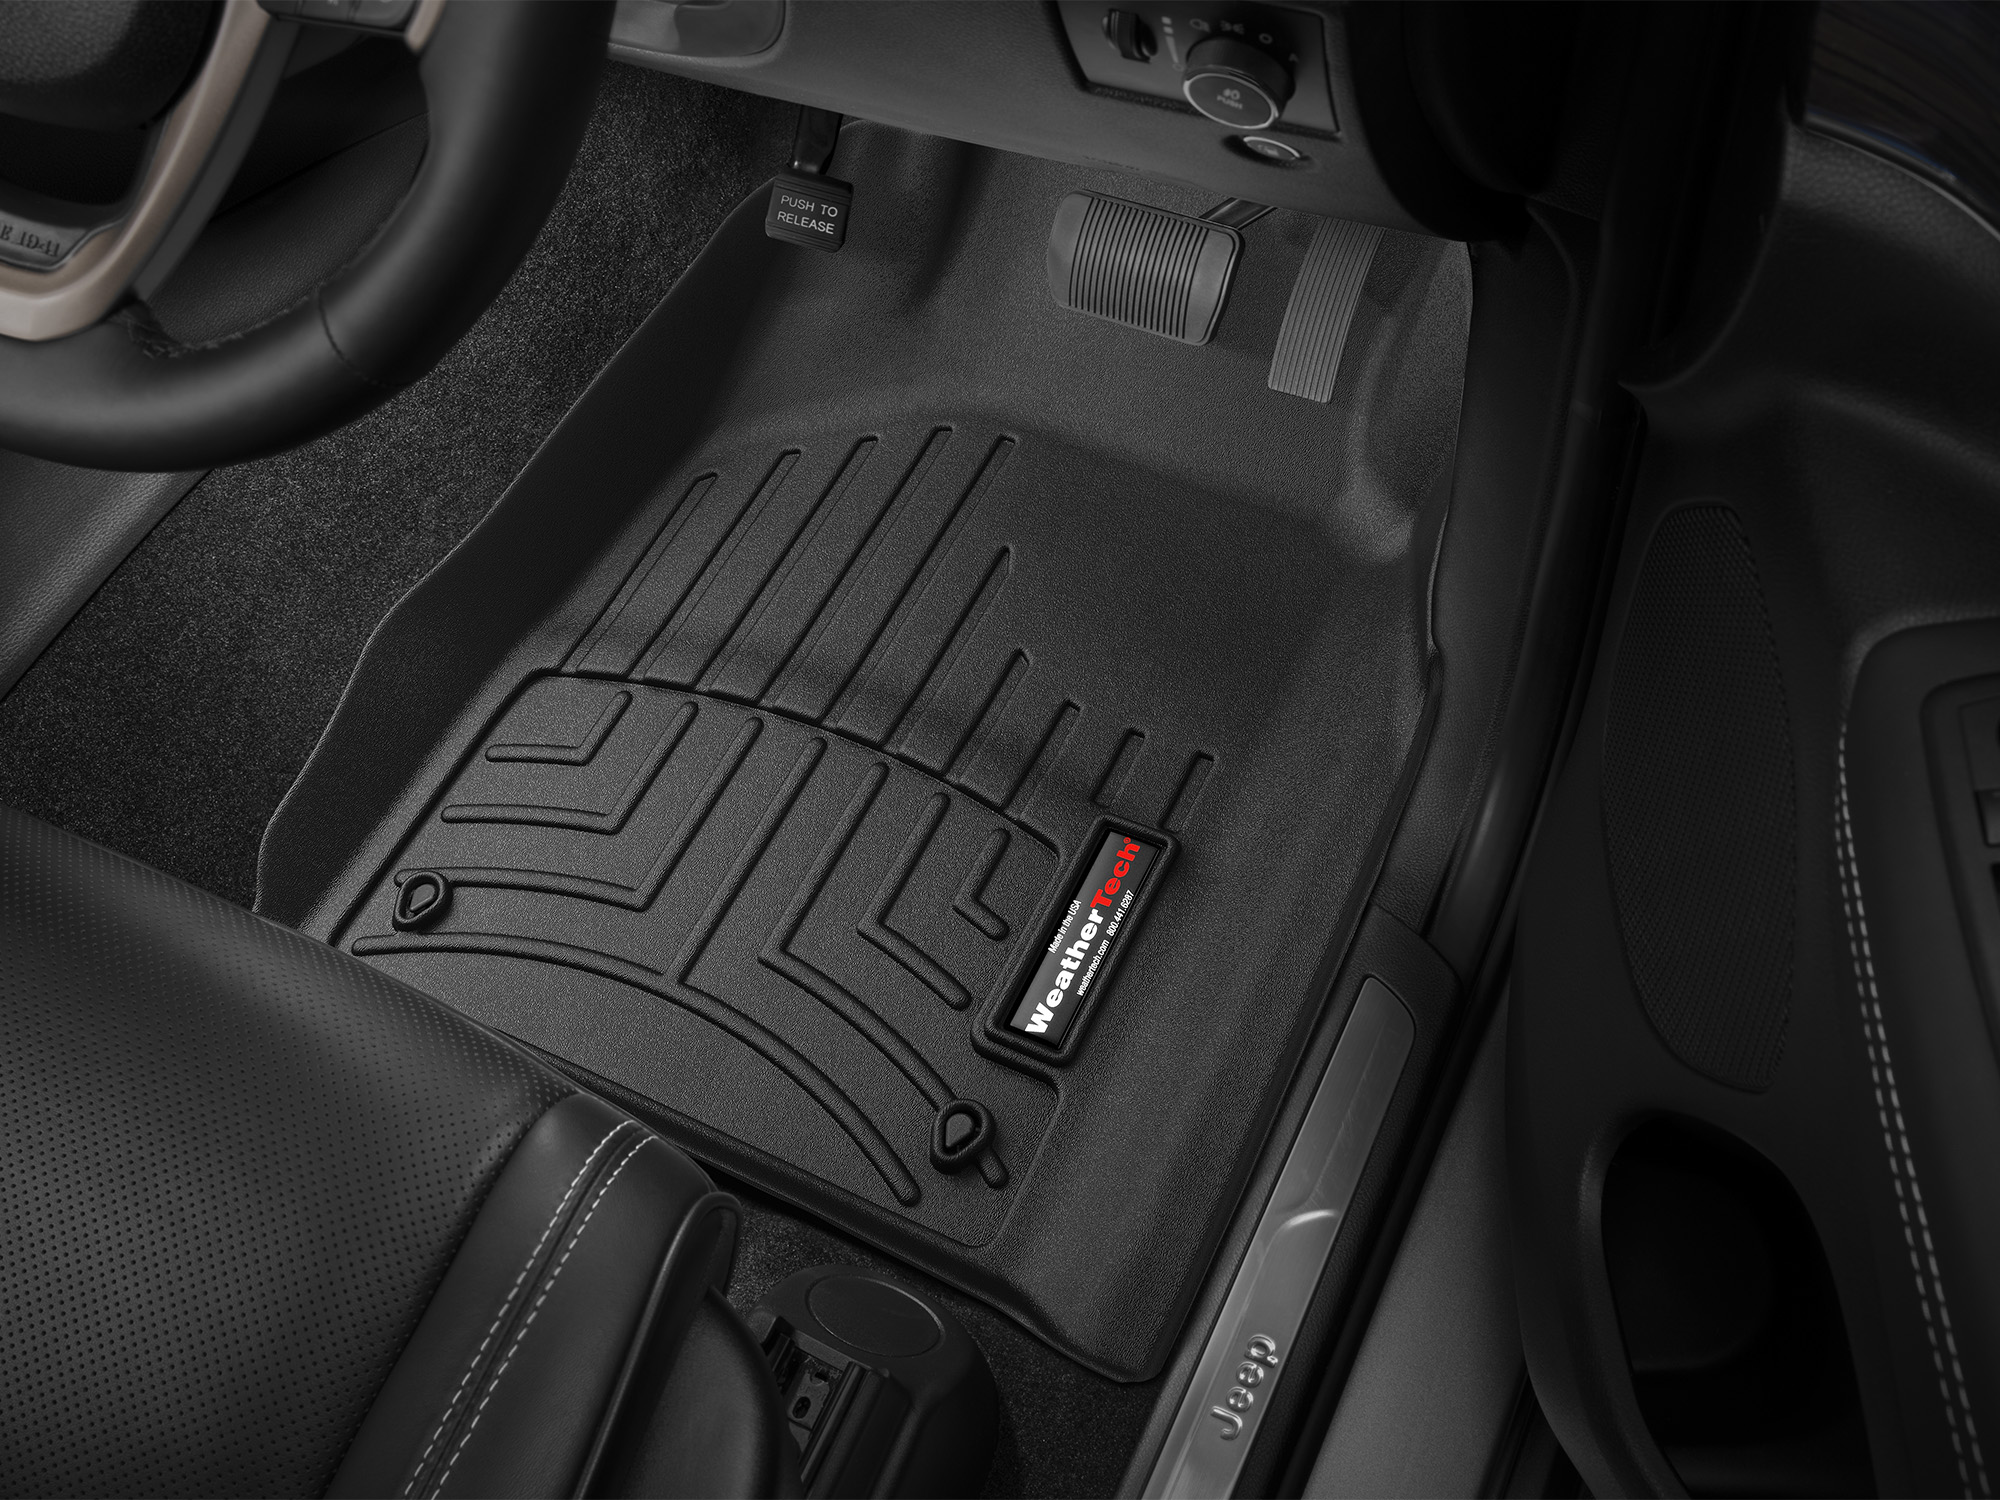 Weathertech floor mats vw passat - Custom Fit Laser Measured Floorliners Are Available For The 2015 Nissan Qashqai Individual Availability Is Based On Your Vehicle S Options